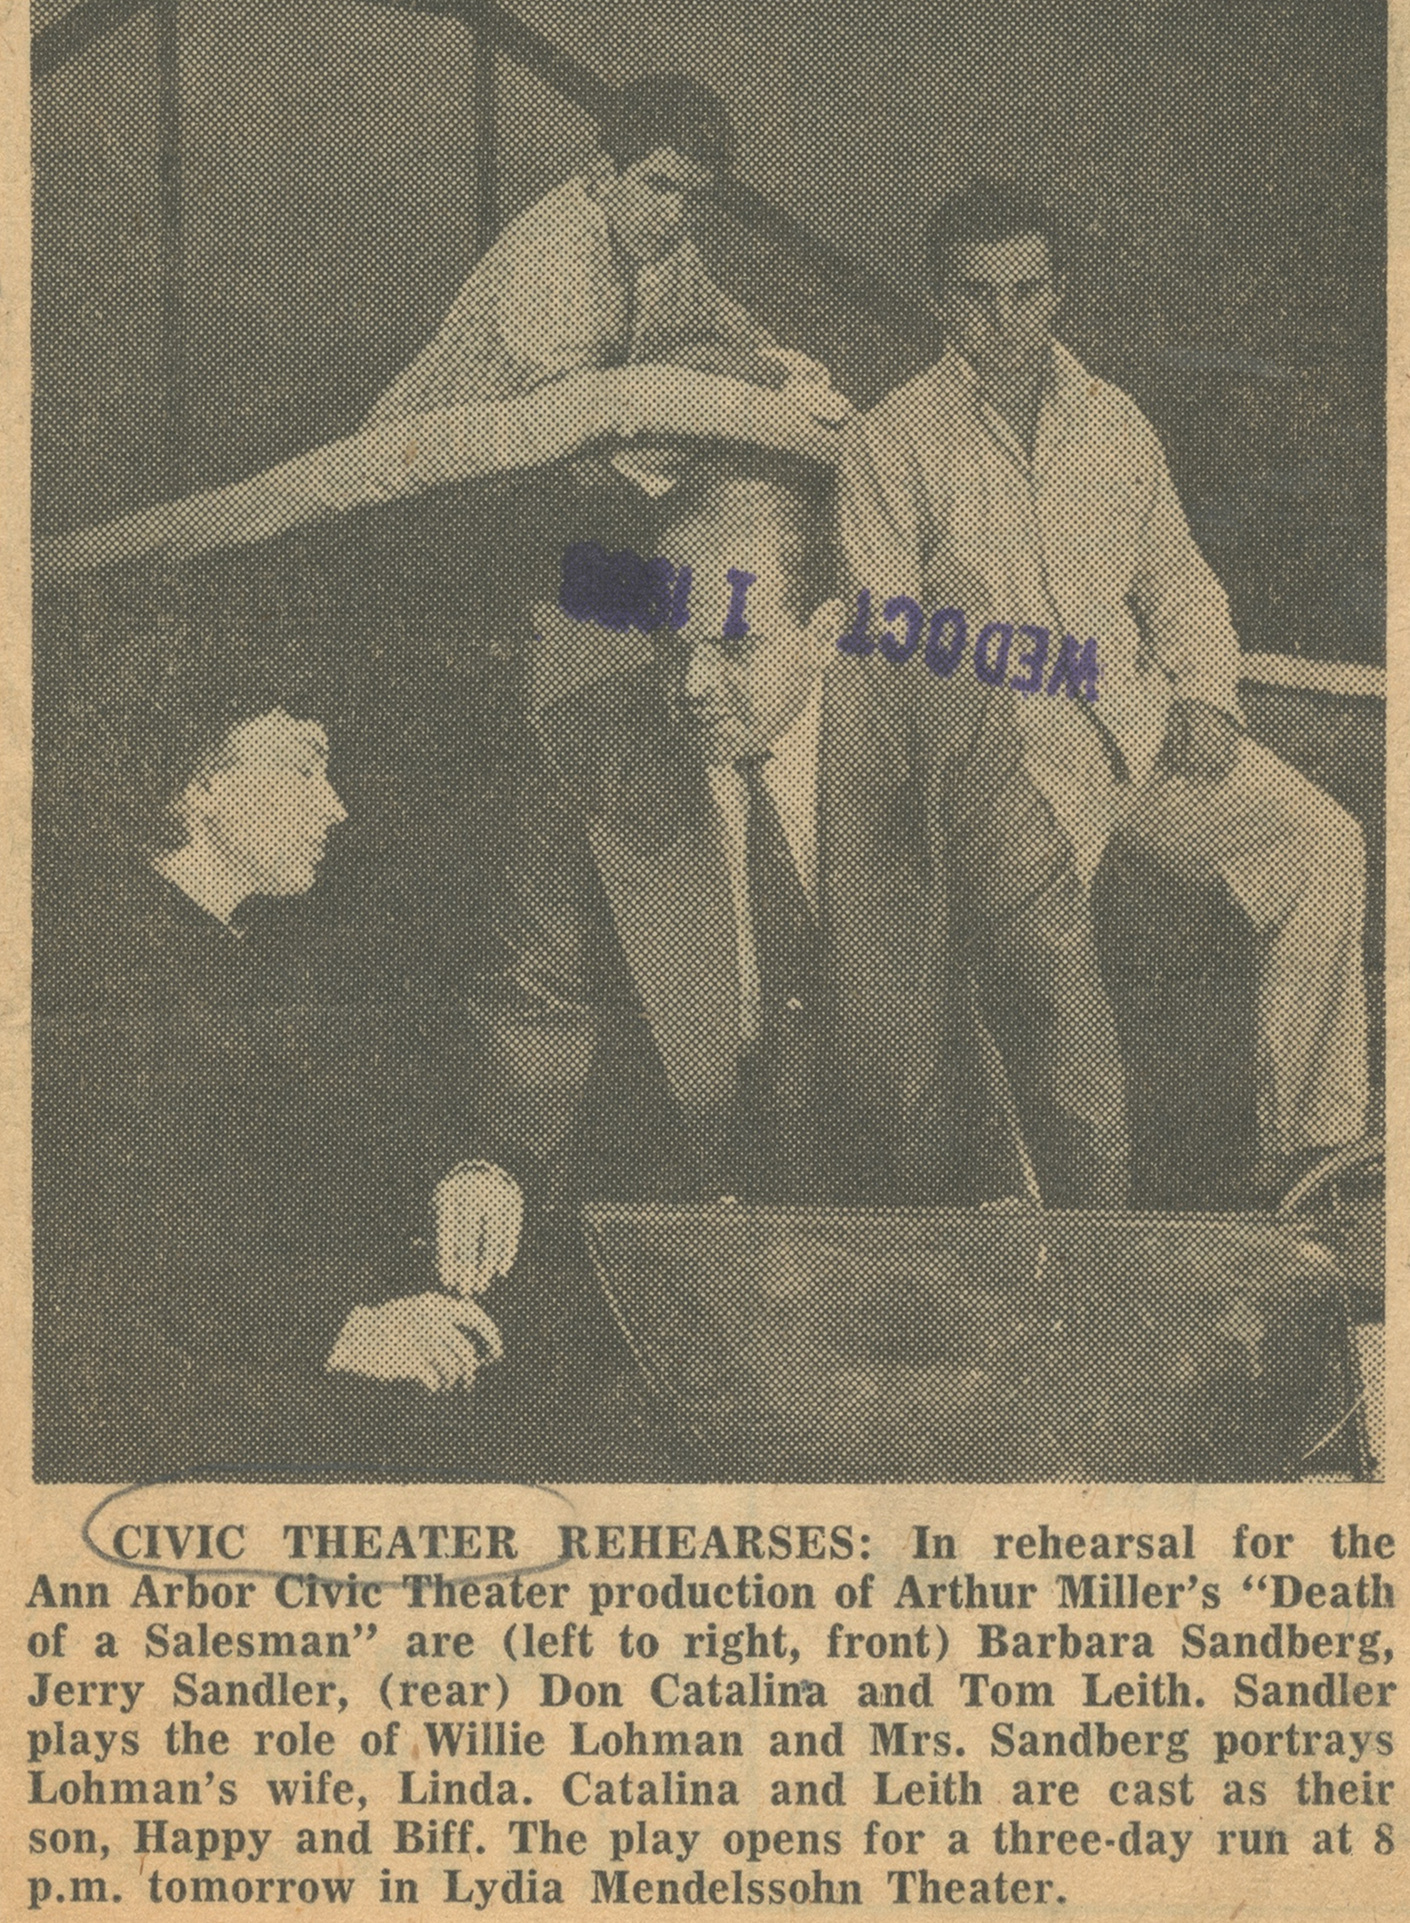 Civic Theater Rehearses image